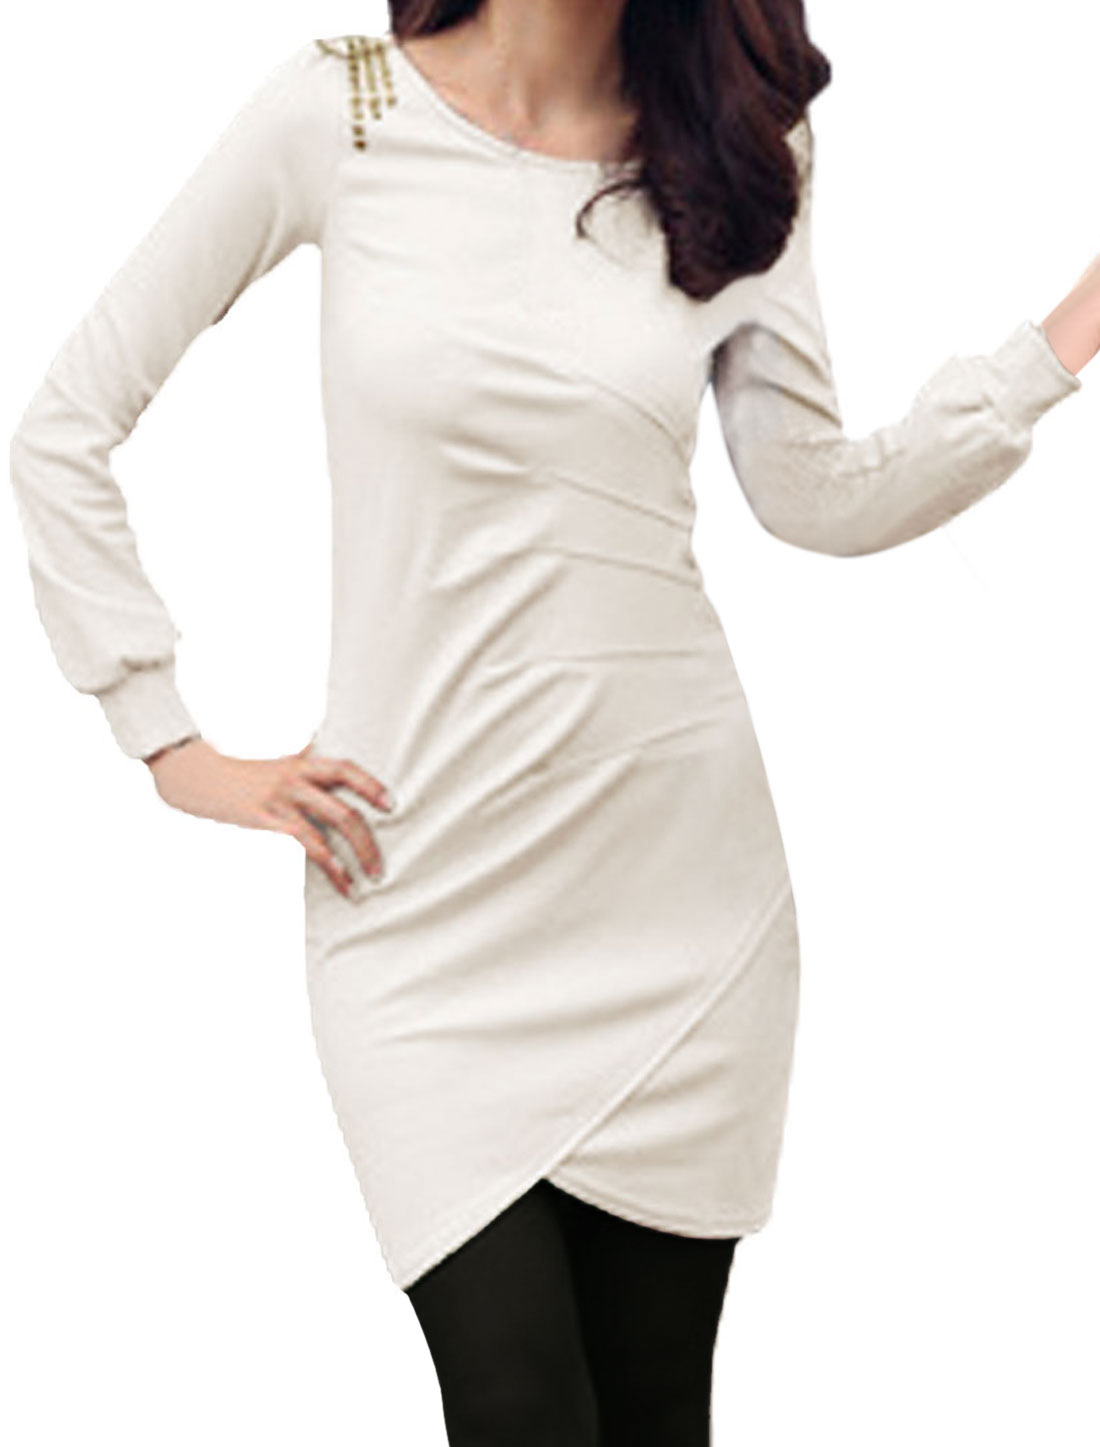 Ladies White Ruched Slim Fitting Tunic Pullover Tee Shirt XS